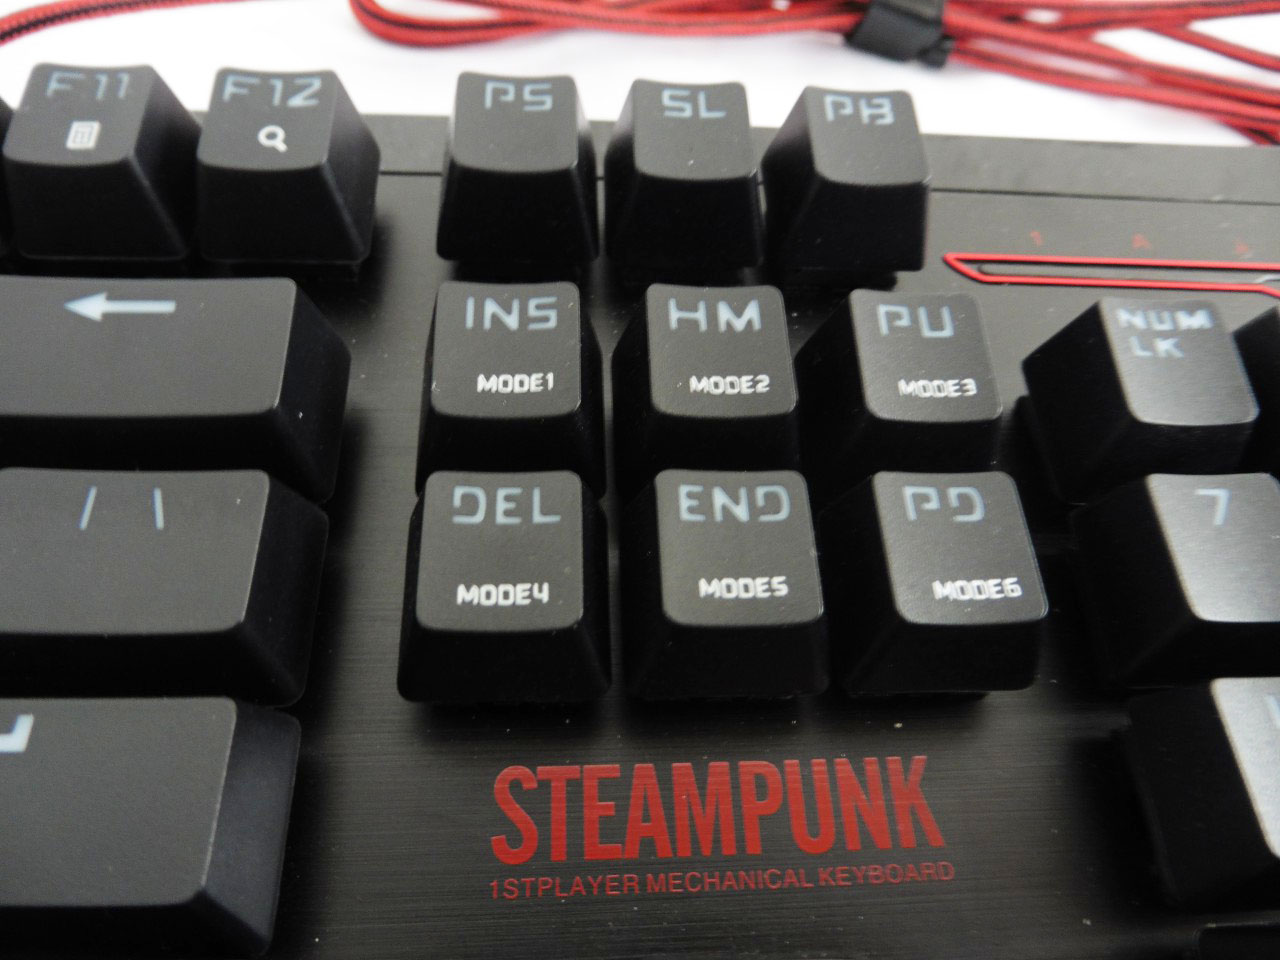 Unboxing & Review: 1STPLAYER Steampunk Mechanical Keyboard 8